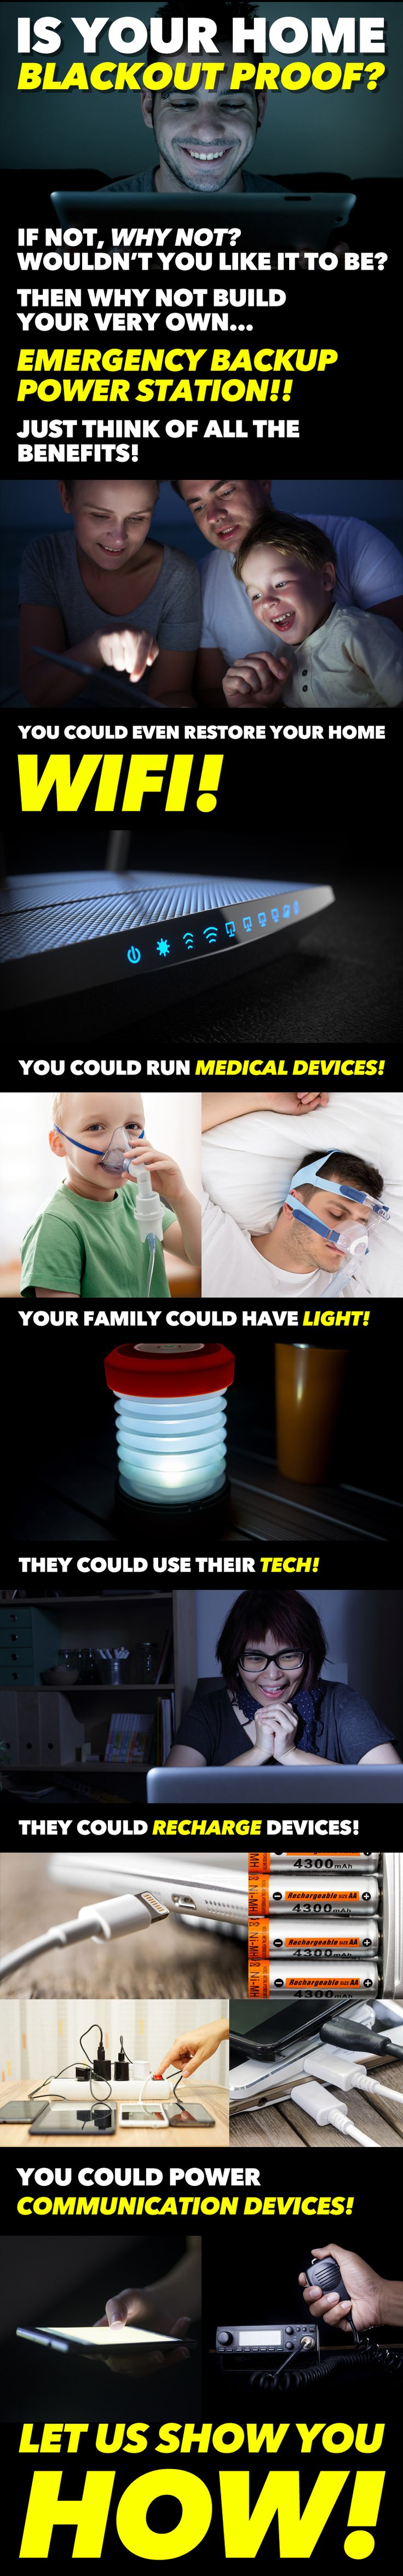 Learn how to make your home & family completely BLACKOUT PROOF!! Never let power outages or the aging grid ever disrupt your life ever again!! Disaster Emergency Preparedness Power Outage Prepper Light Off Grid Power Survival Natural Disaster Battery Bank Electrical Backup Wifi Home Family 72 Hour Kit Bug Out Bag Solar Panel Energy Power Outage